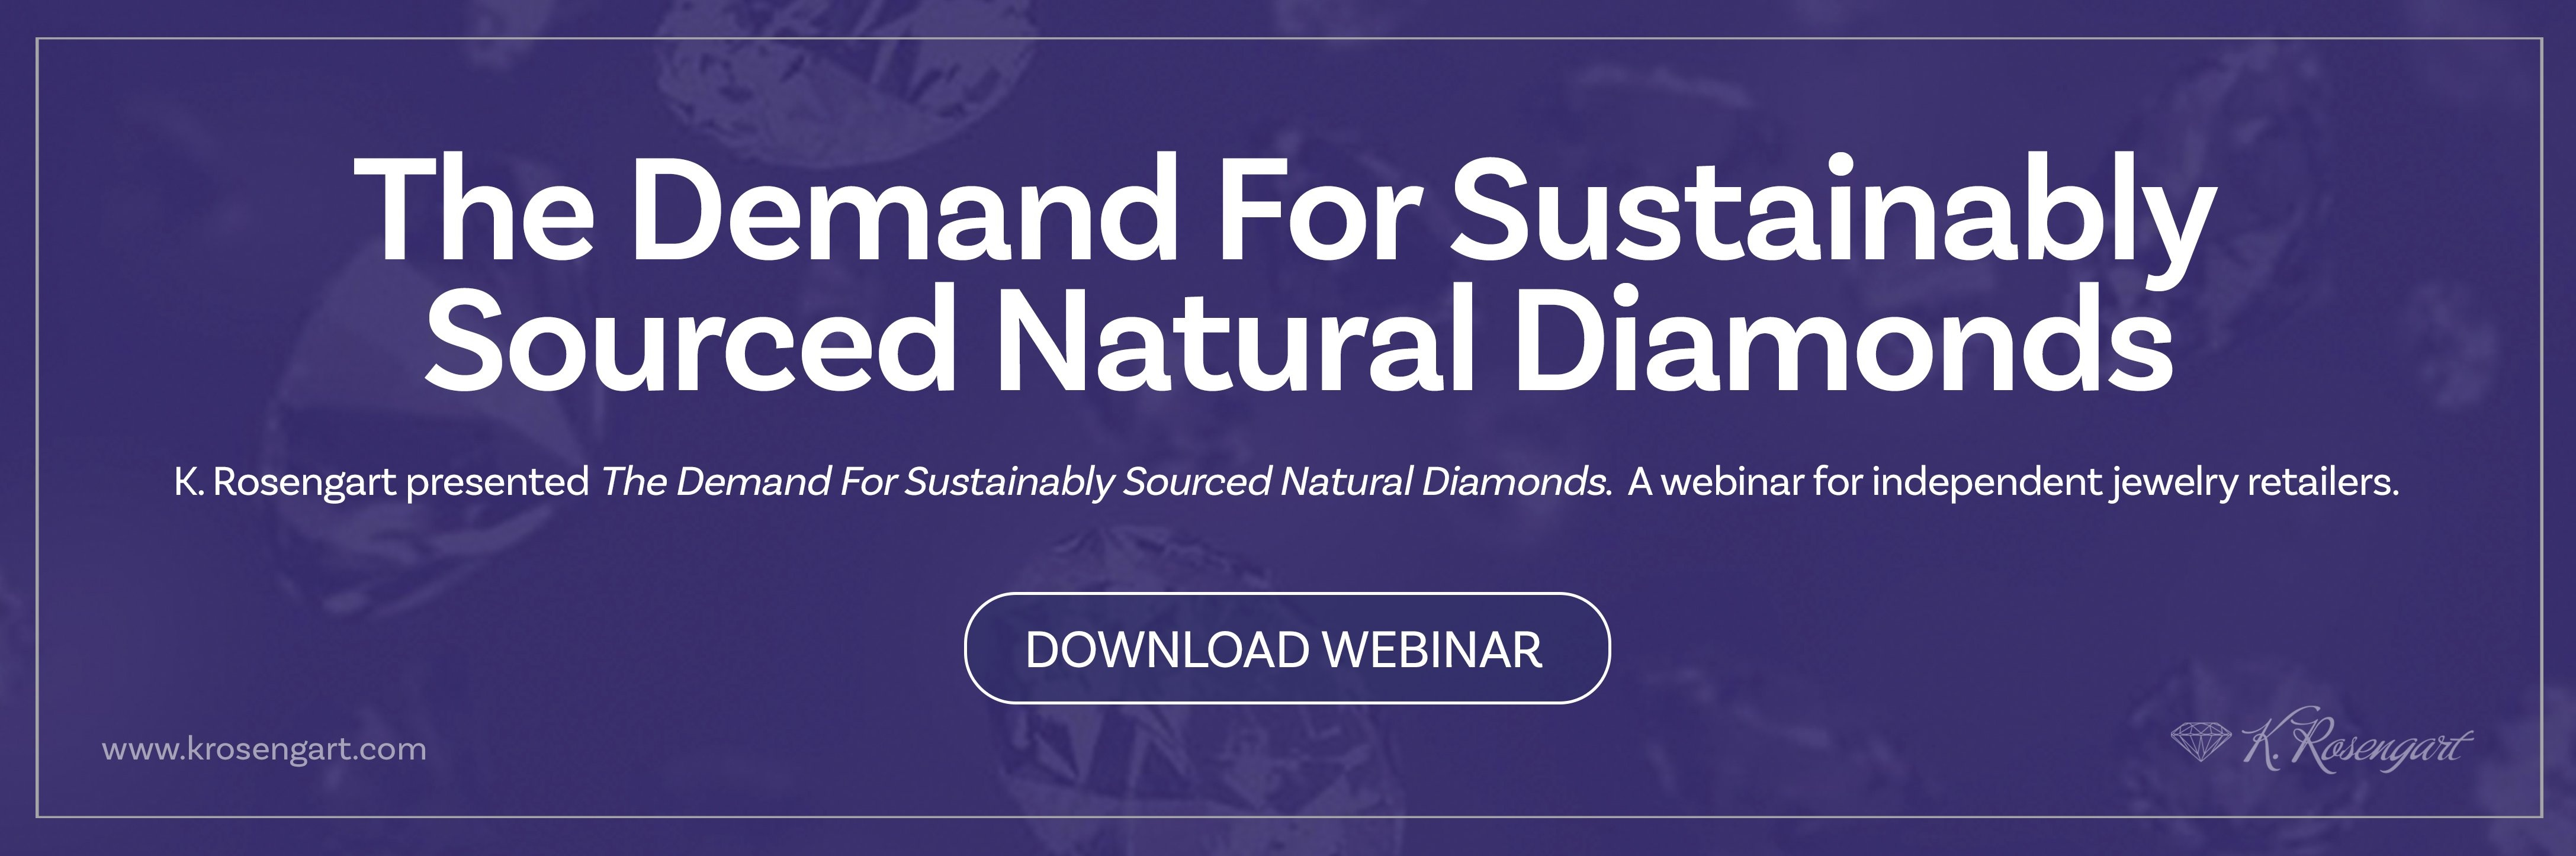 demand for sustainably sourced natural diamonds concept image